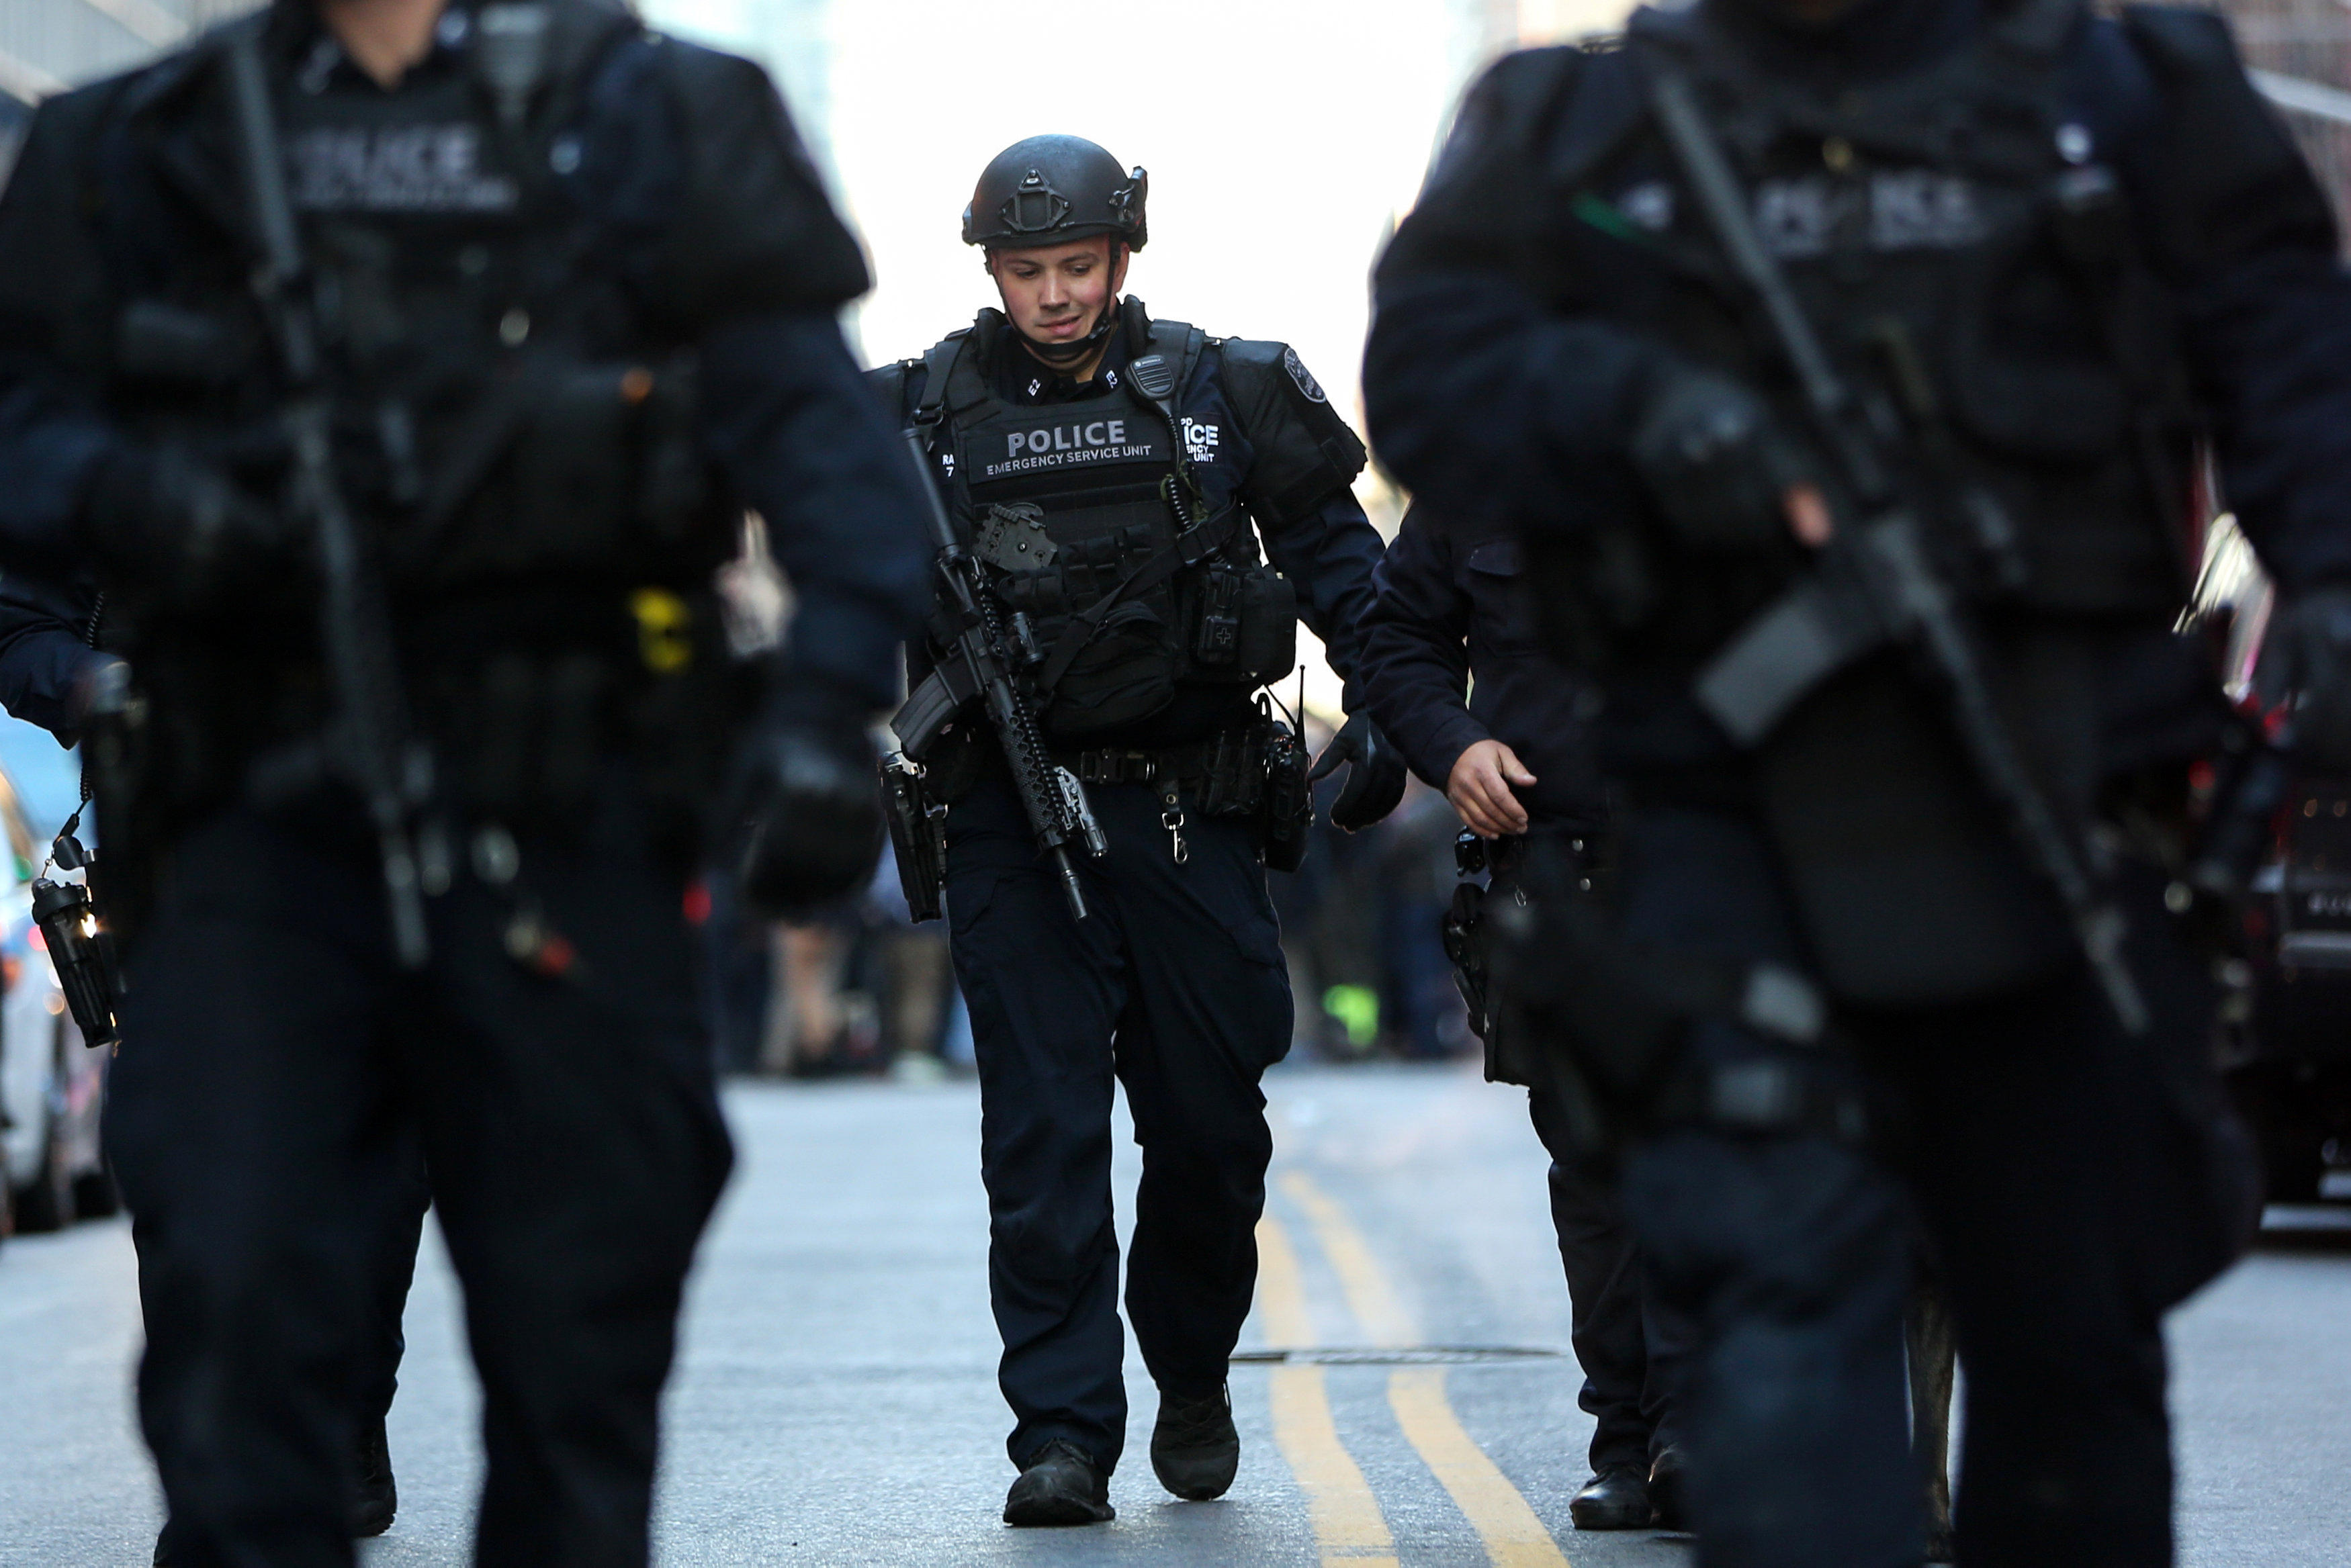 705fd9157 Port Authority bus terminal explosion: New York Police Department ...